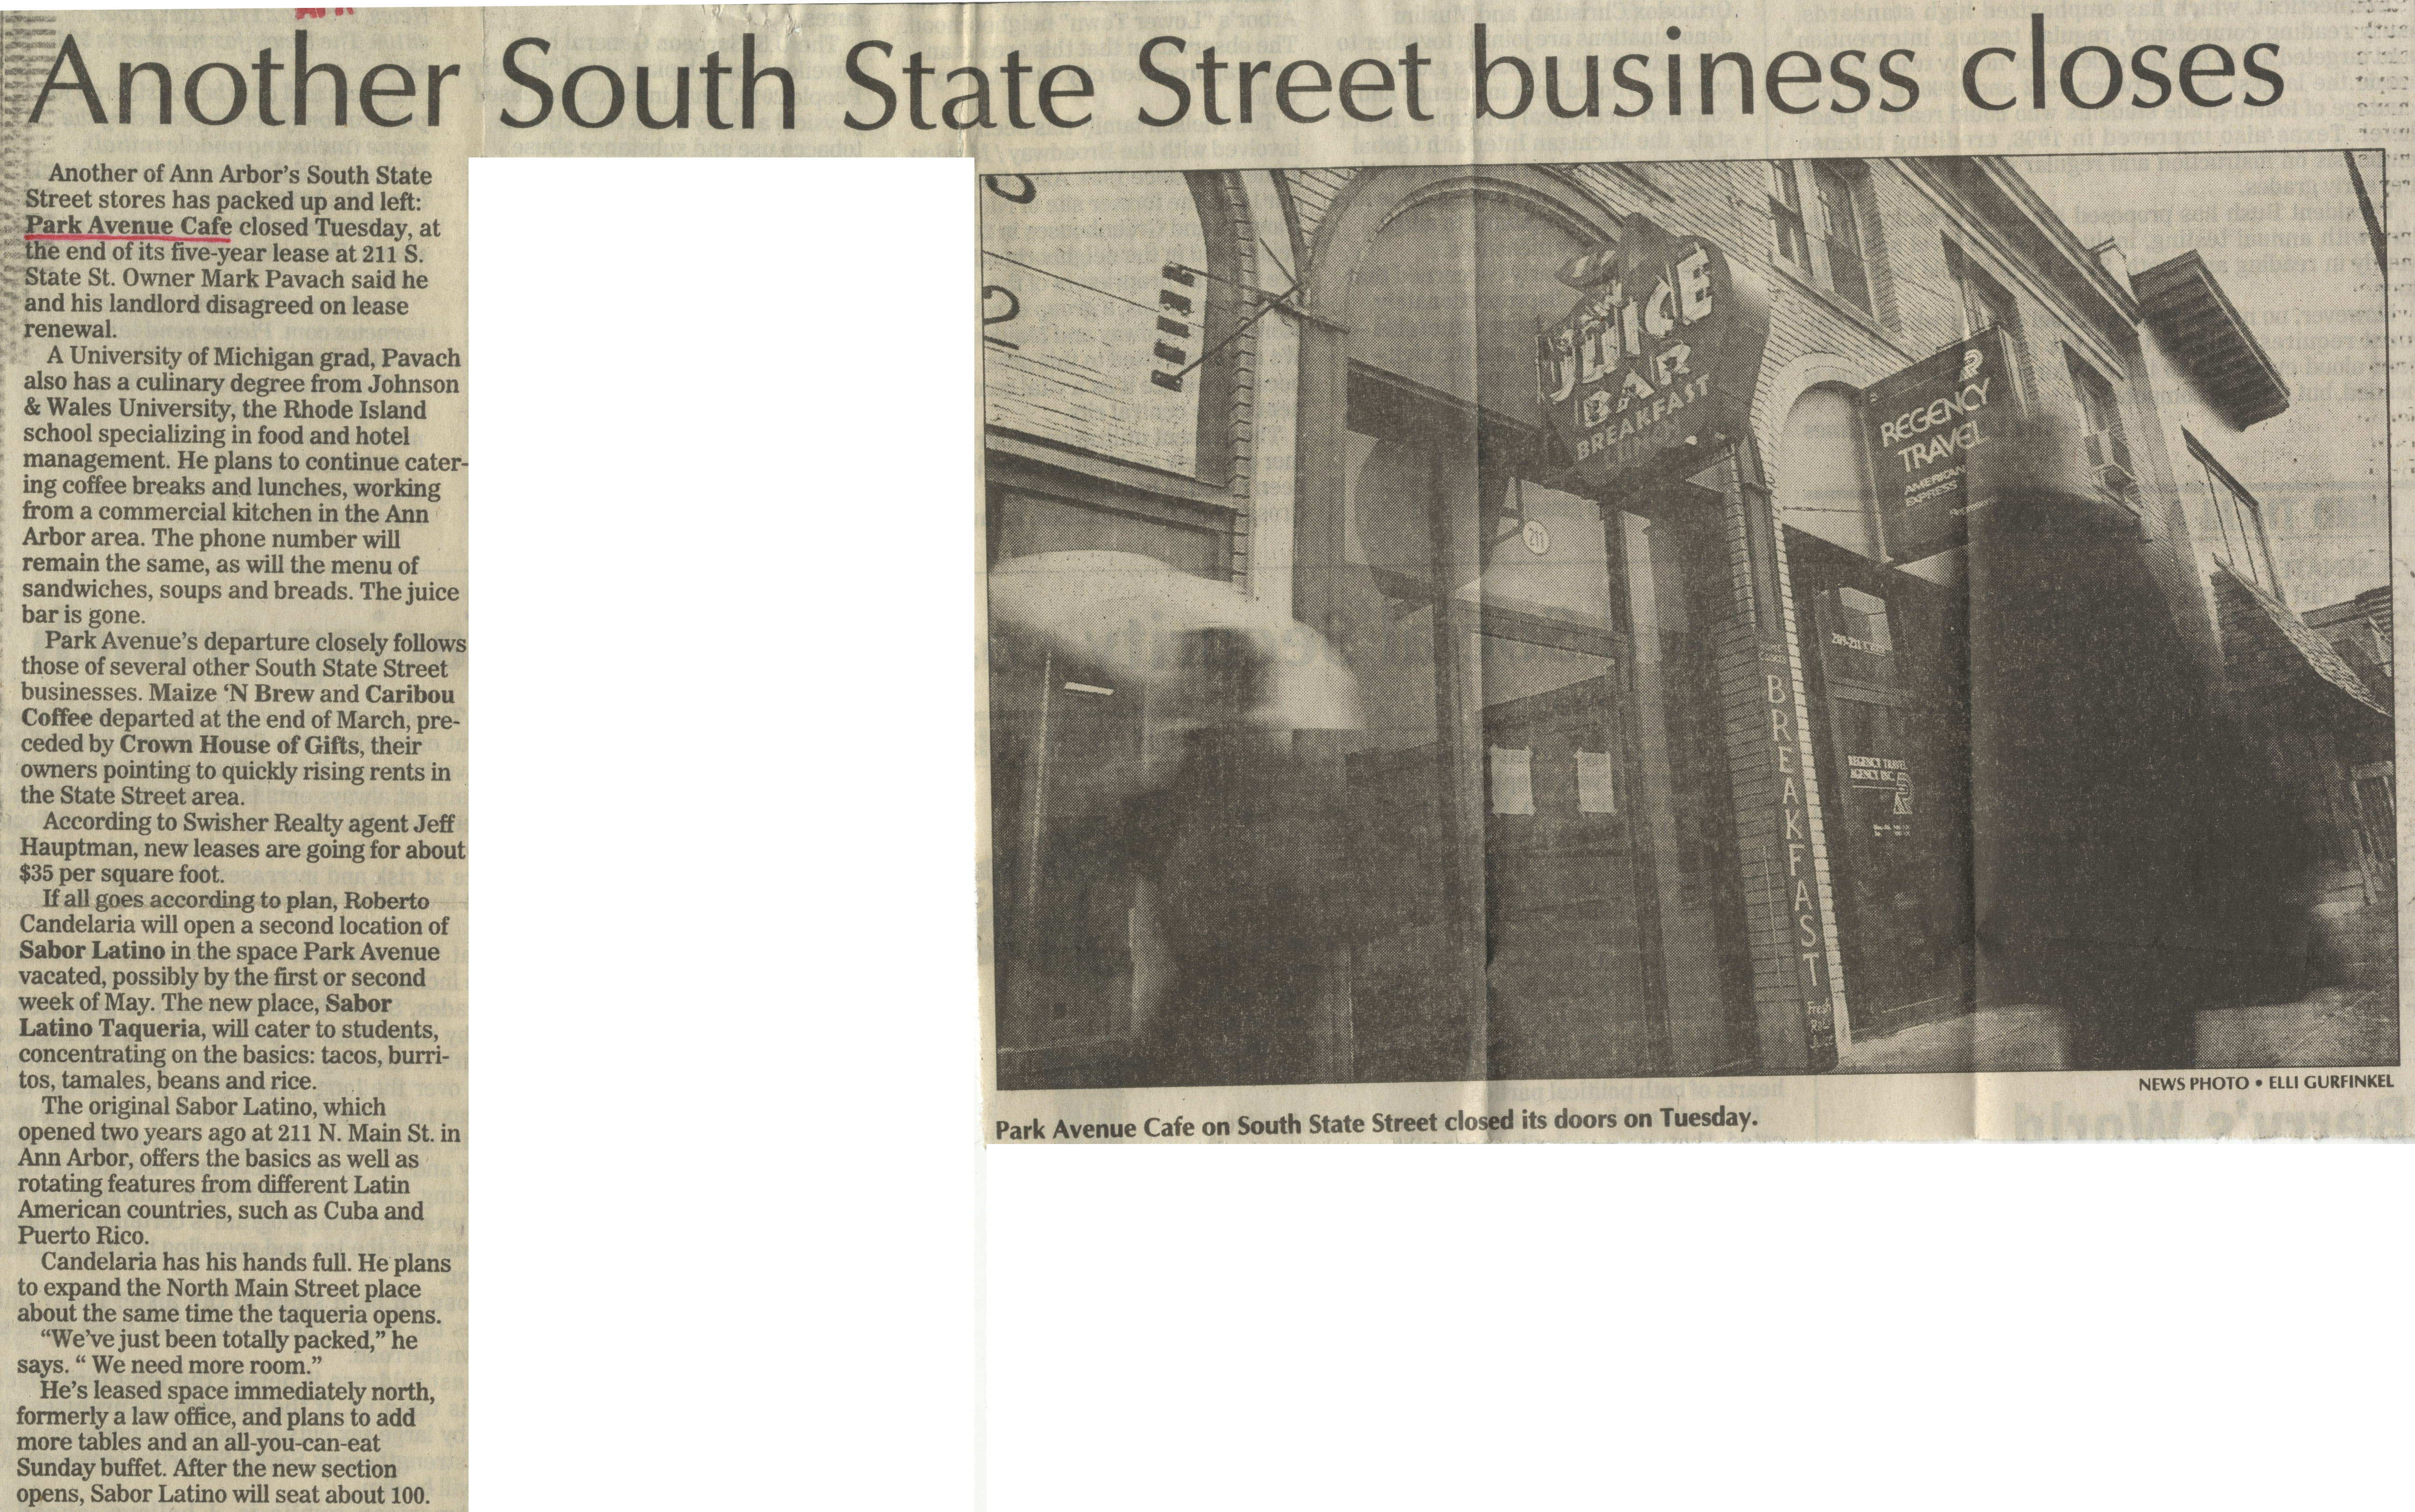 Another South State Street Business Closes image